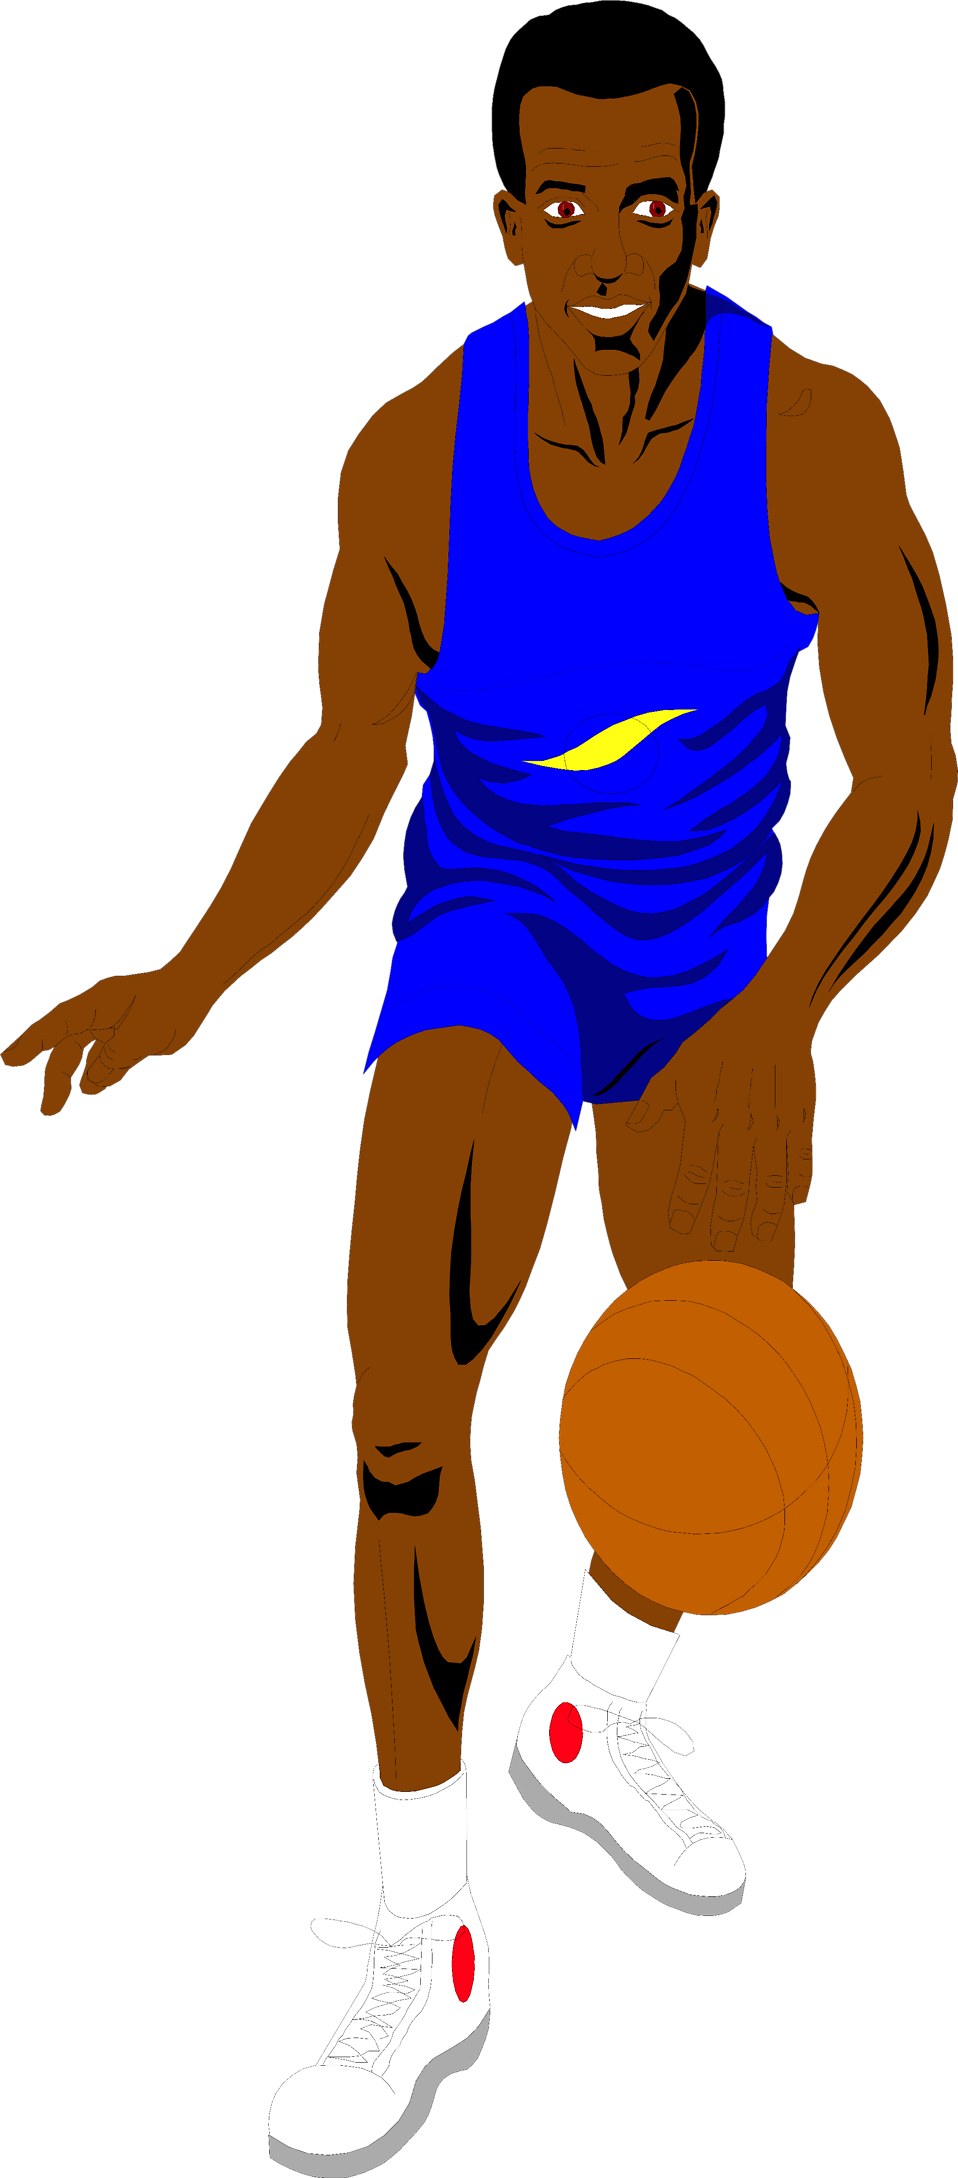 Clipart basketball players picture Basketball | Free Stock Photo | Illustration of an African American ... picture